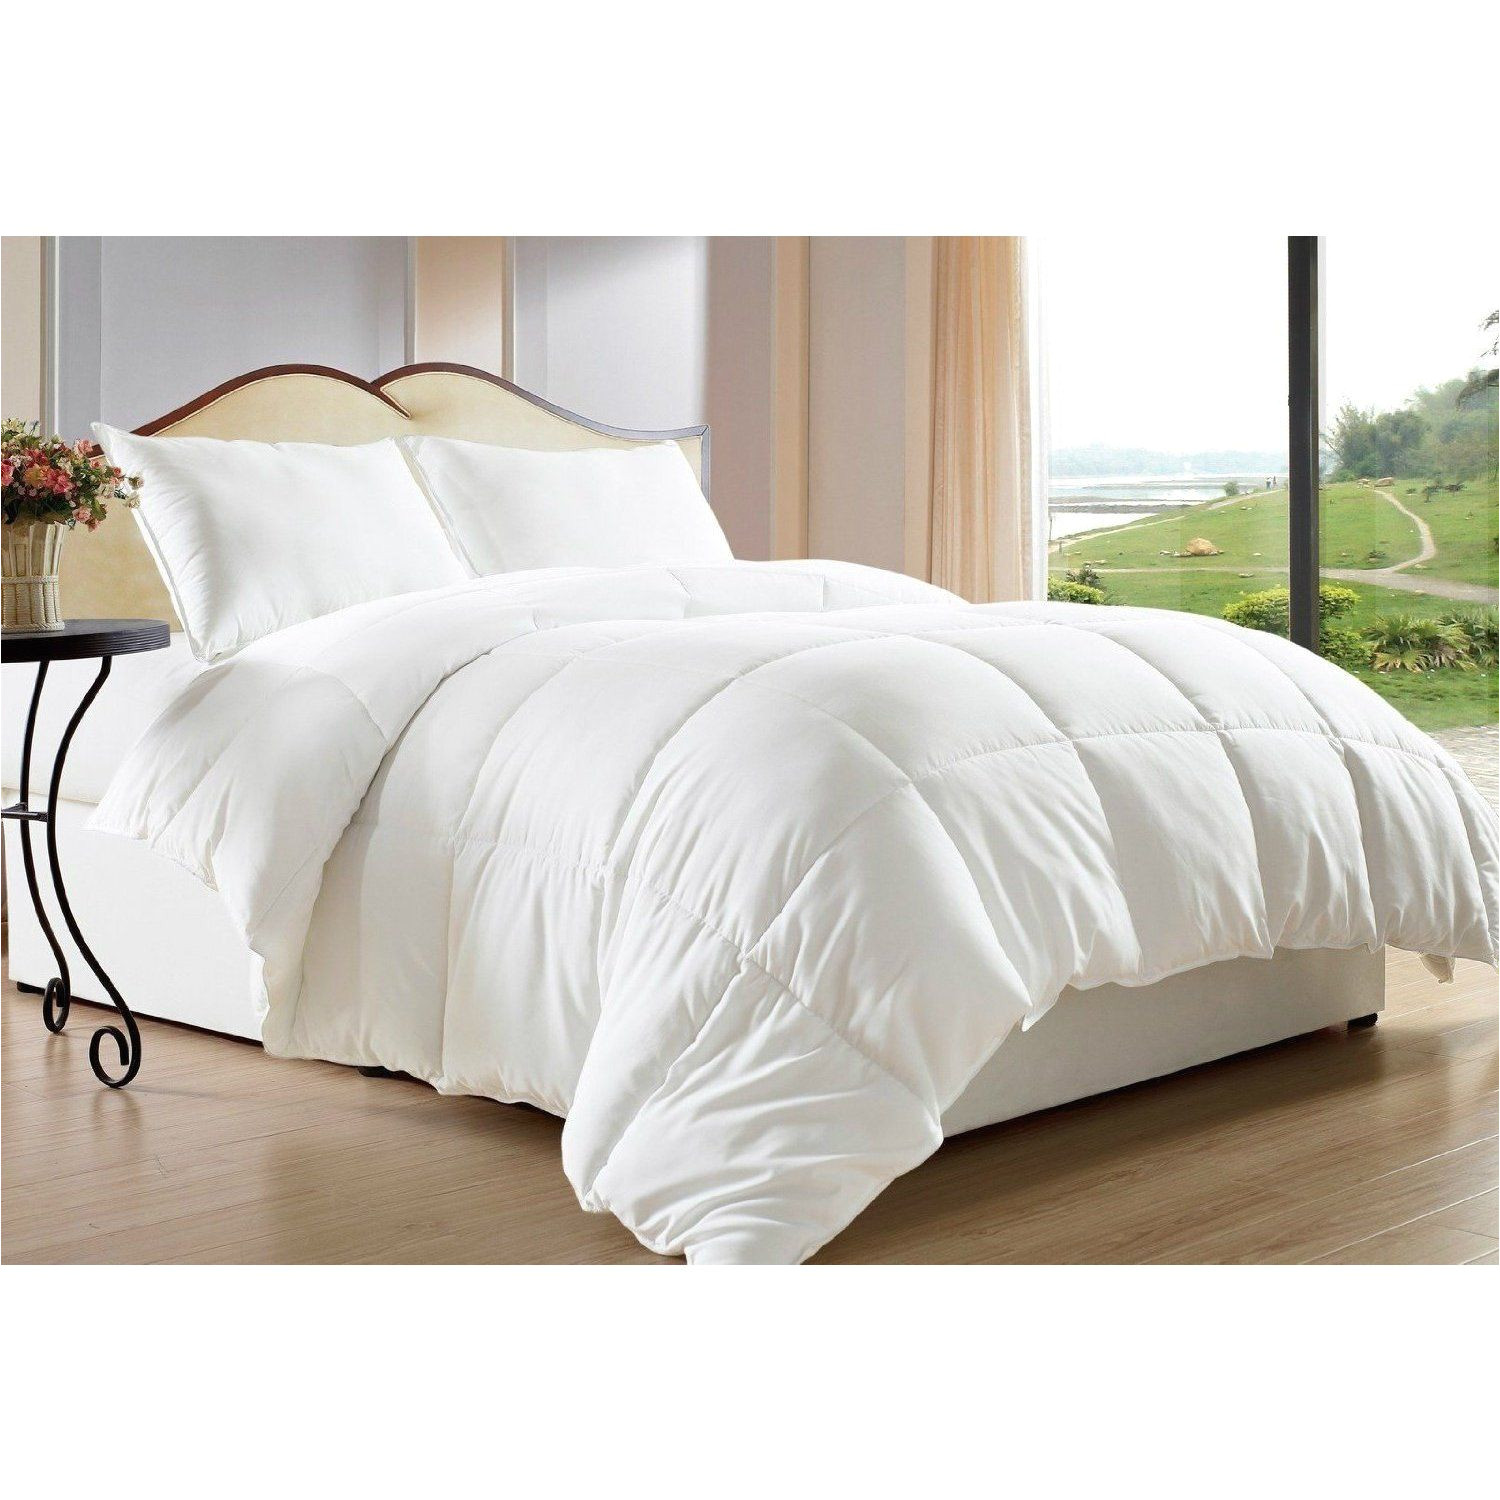 hypoallergenic down alternative comforters provide the warmth and softness of down that minimize the development of allergic reactions